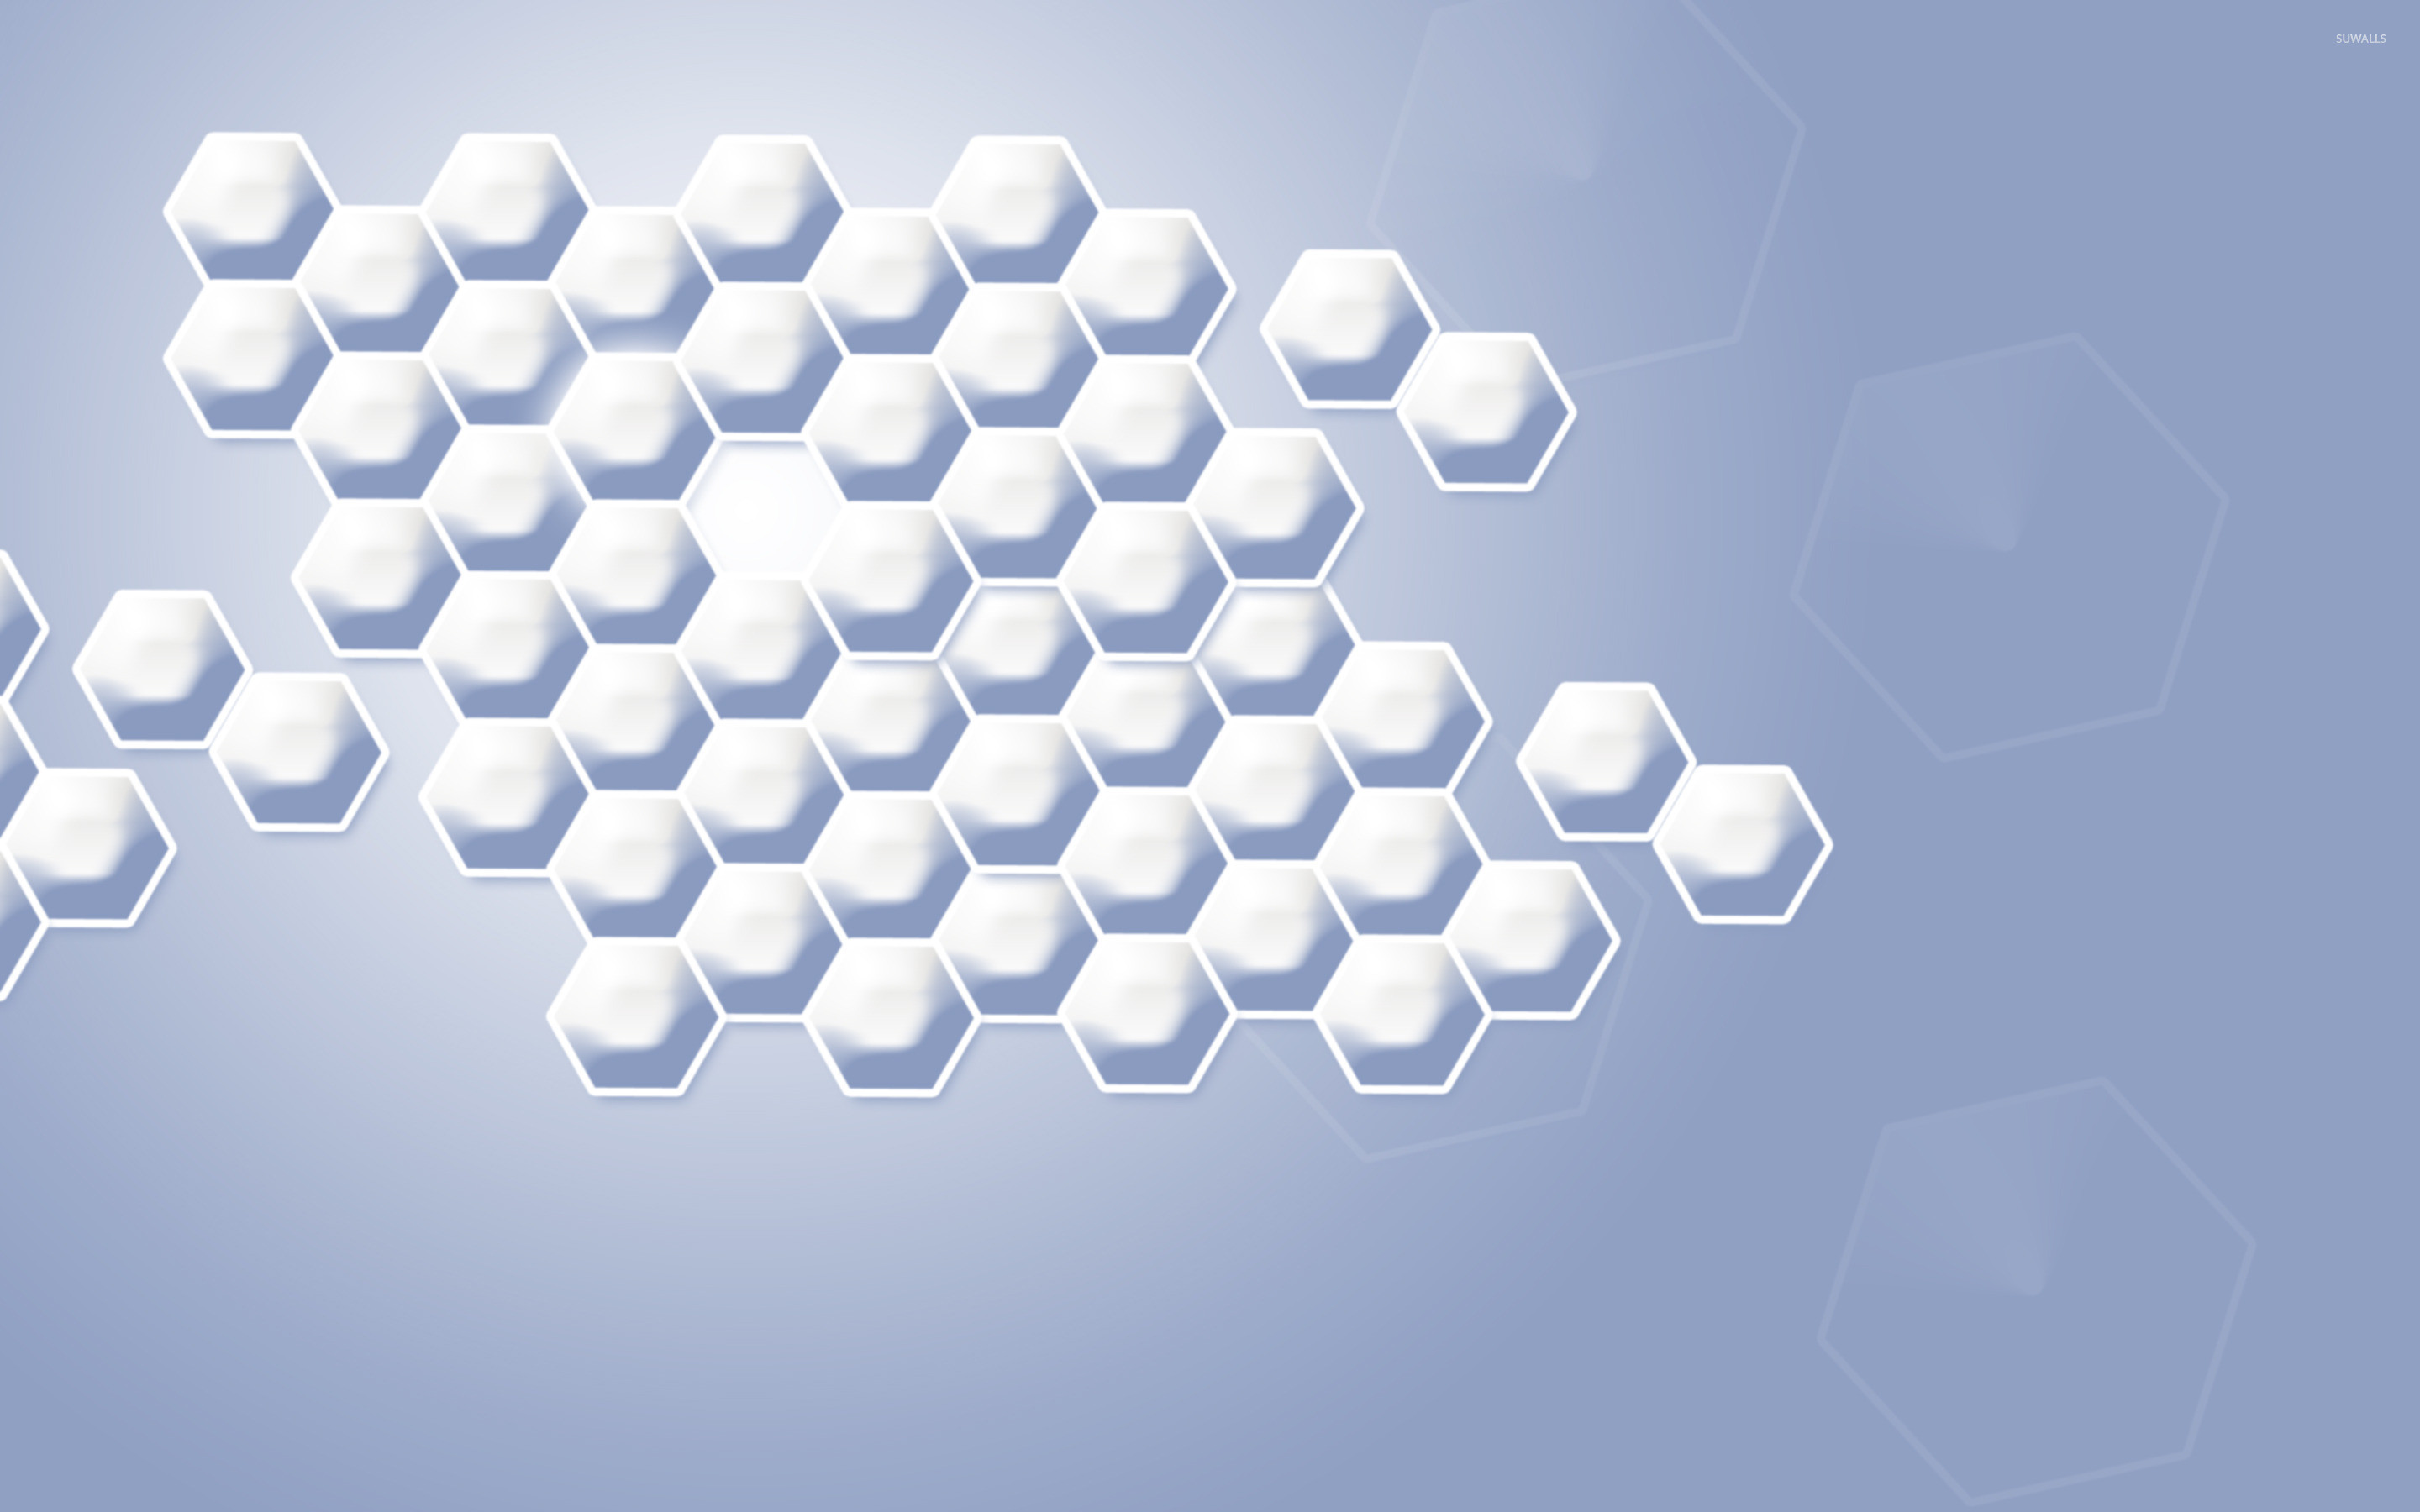 Res: 2880x1800, Silver honeycomb wallpaper